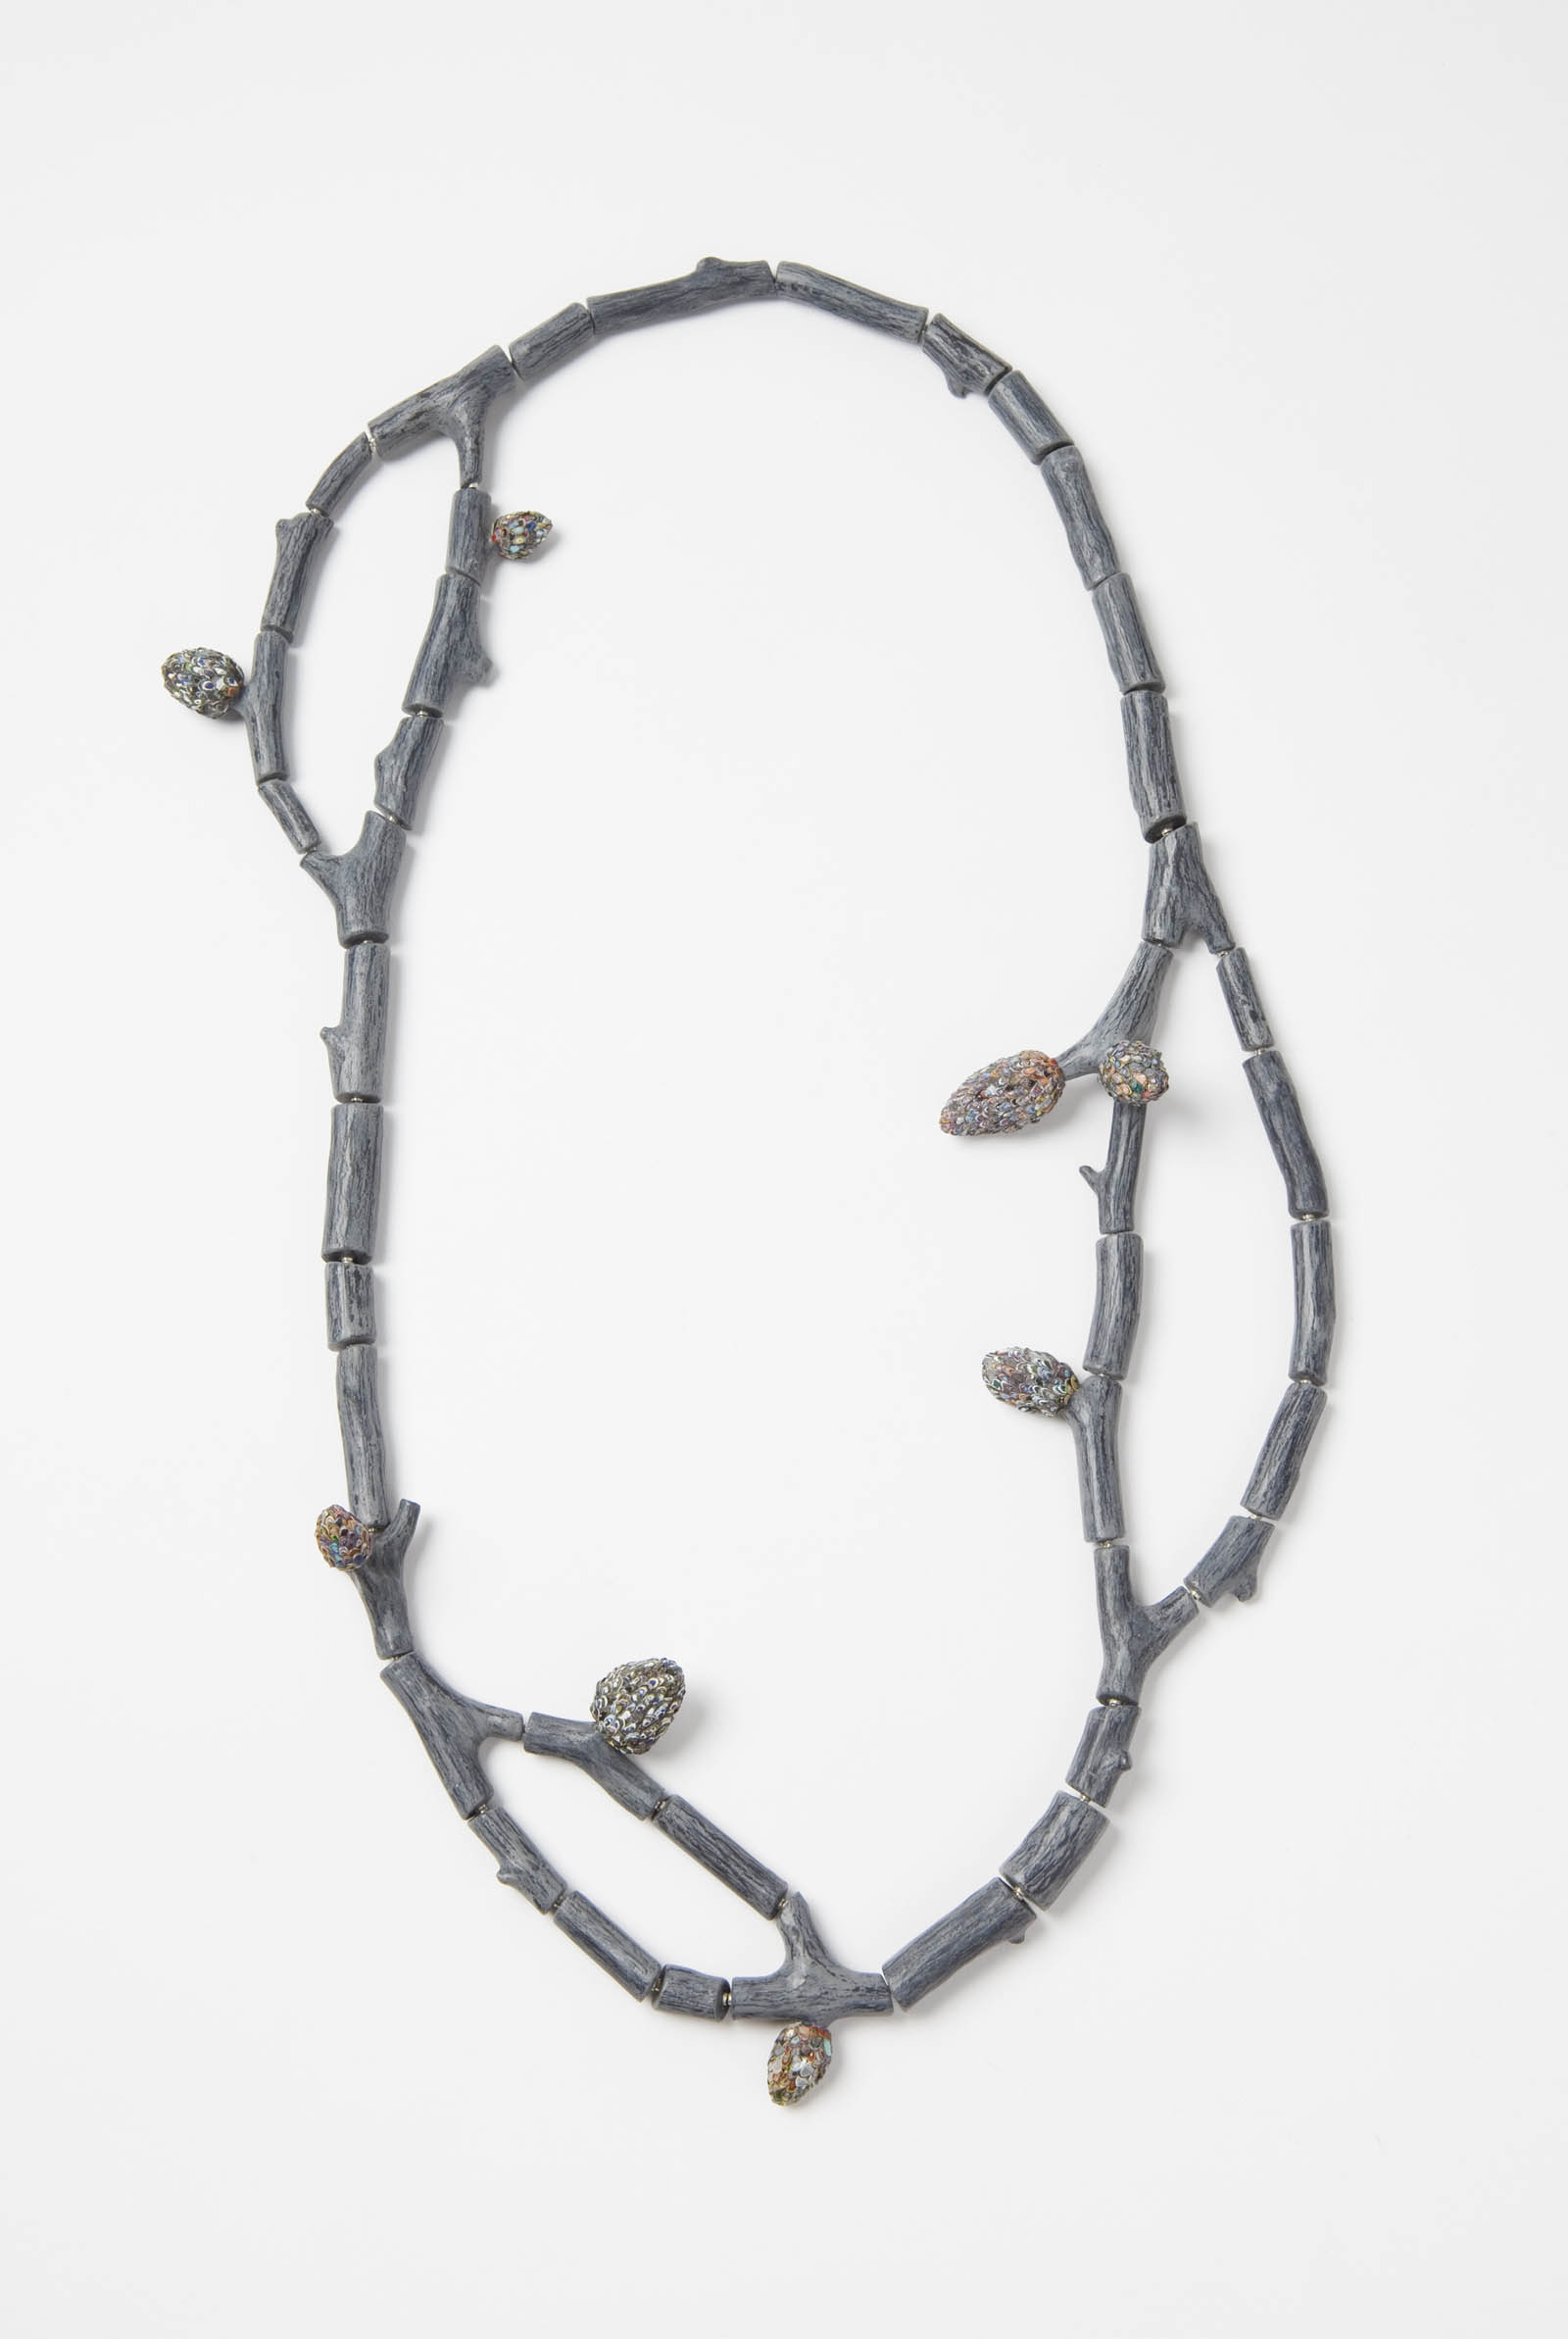 """Raduga Buds 2"" I Necklace, 2013 I Wood, graffiti, silver, steel wire, paint I Photo: Mirei Takeuchi"